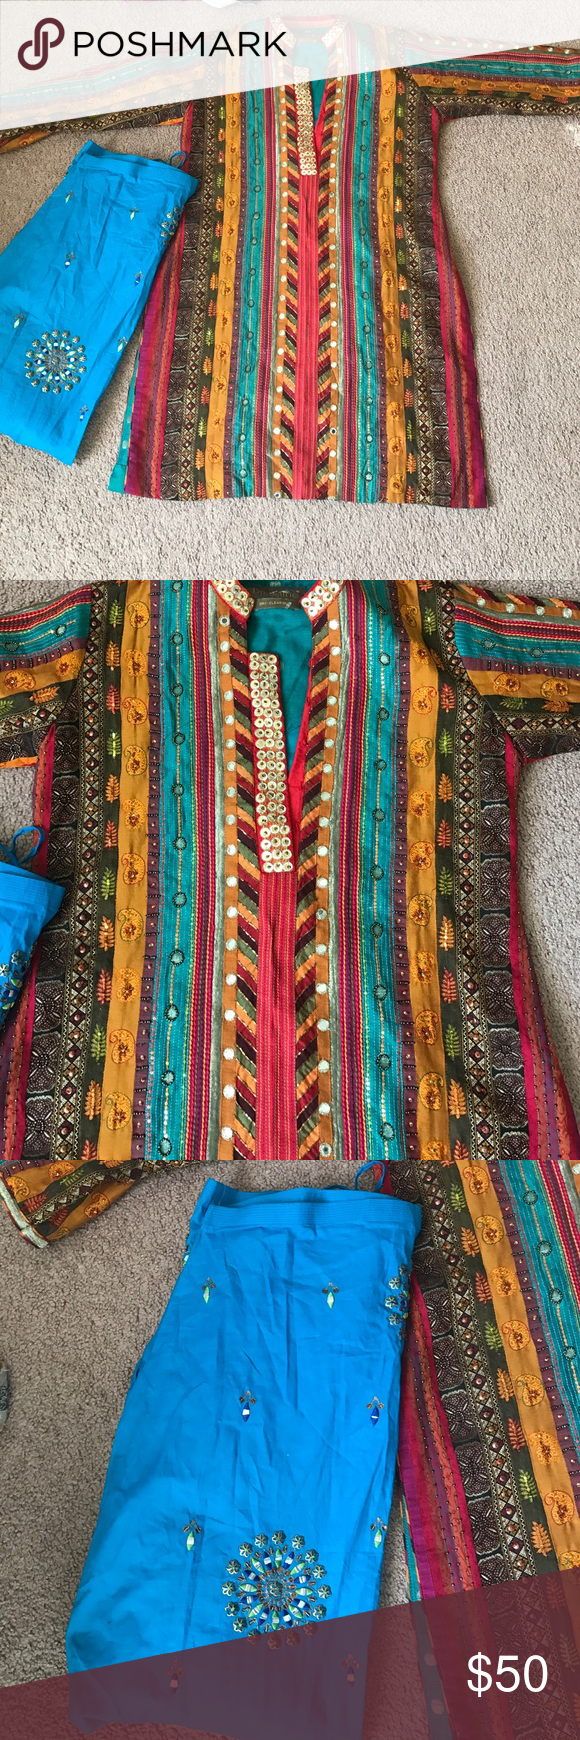 Beautiful Indian outfit Like new beautiful dressline Other